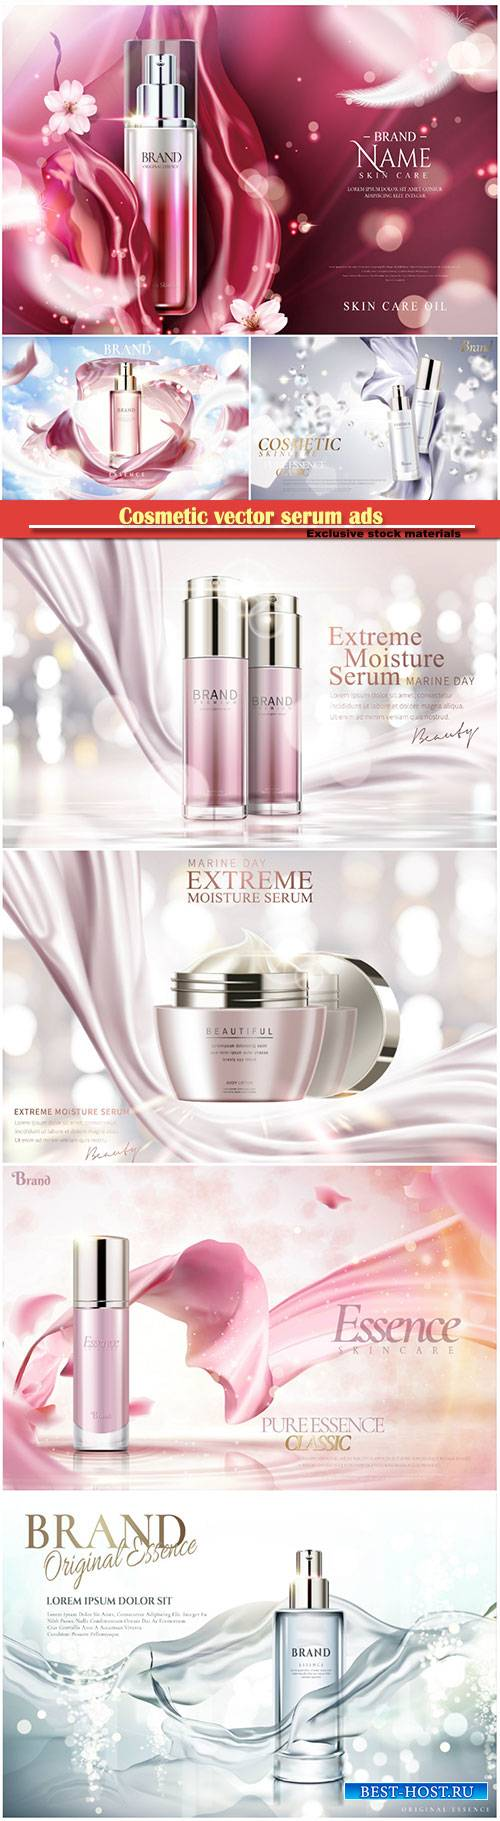 Cosmetic vector serum ads, cosmetic spray, cosmetic cream  in 3d illustrati ...